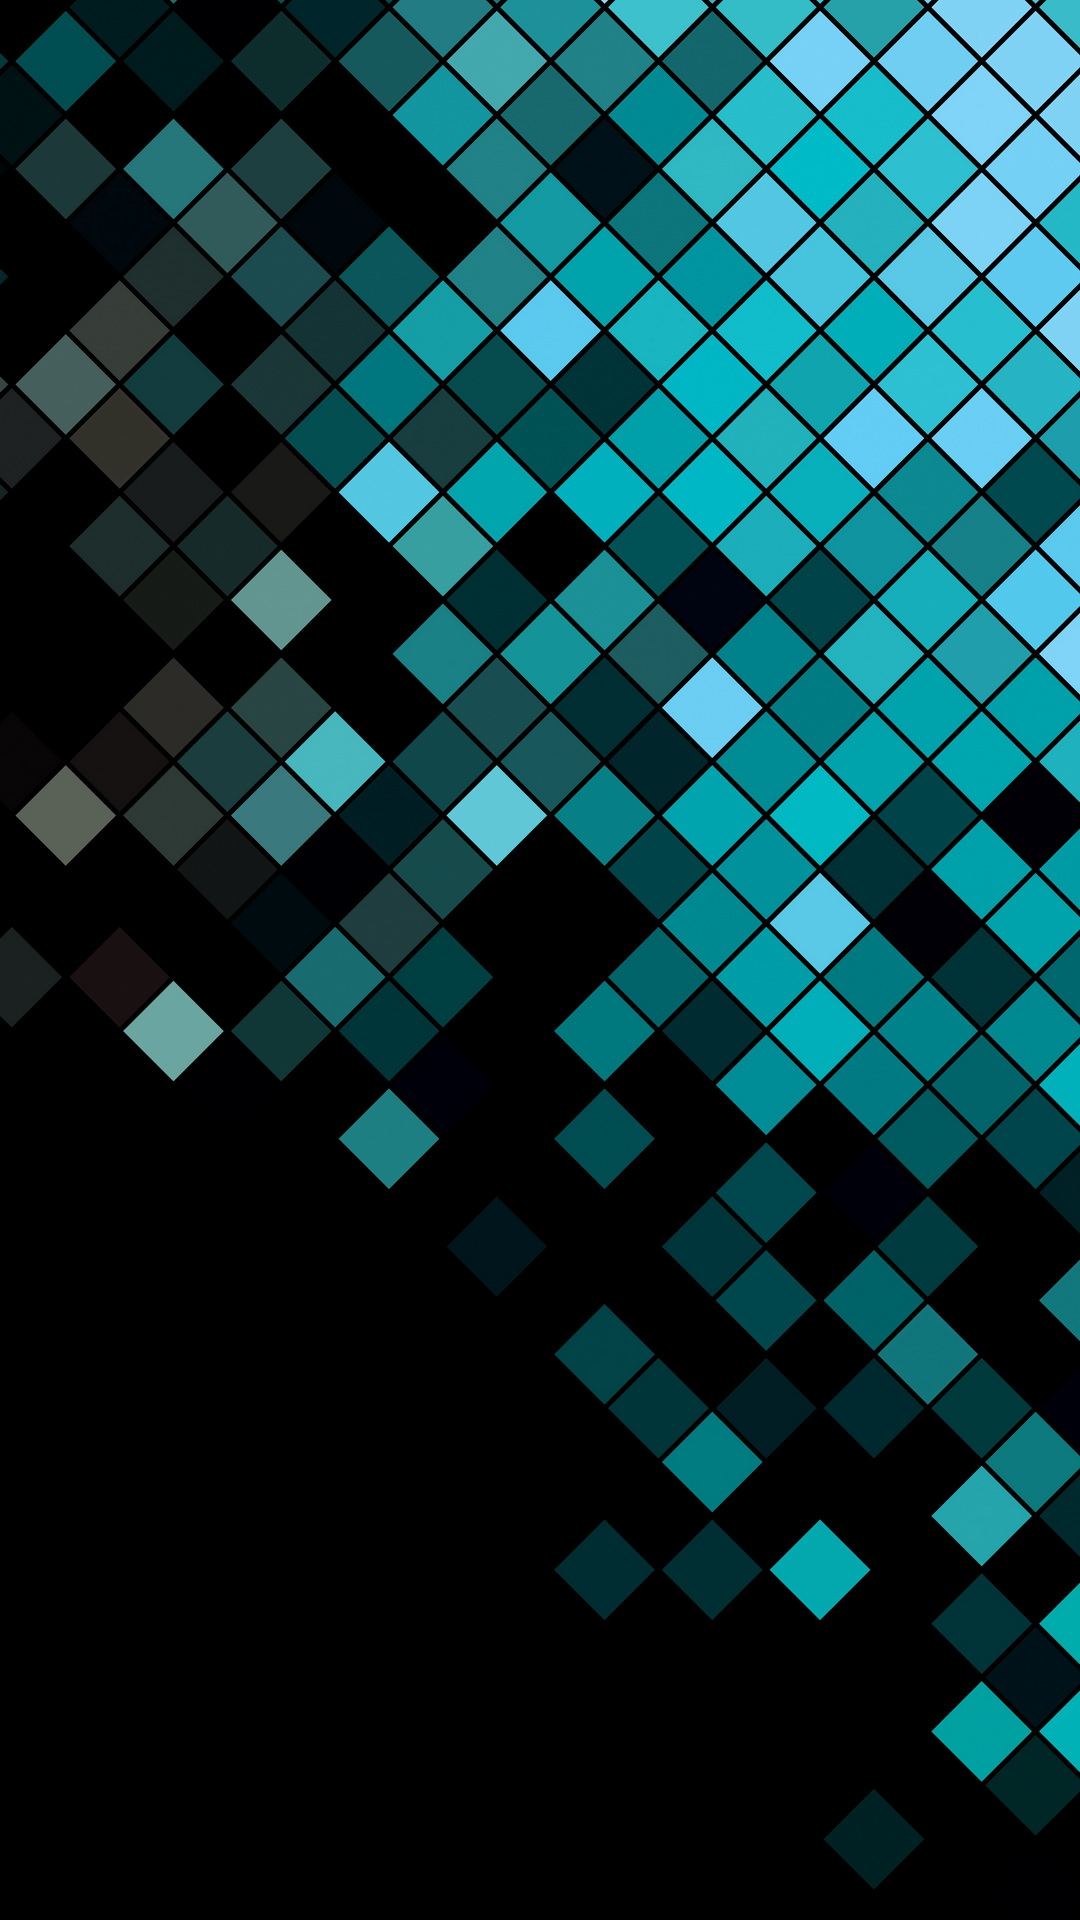 mosaic - iPhone 6 plus High Resolution wallpapers